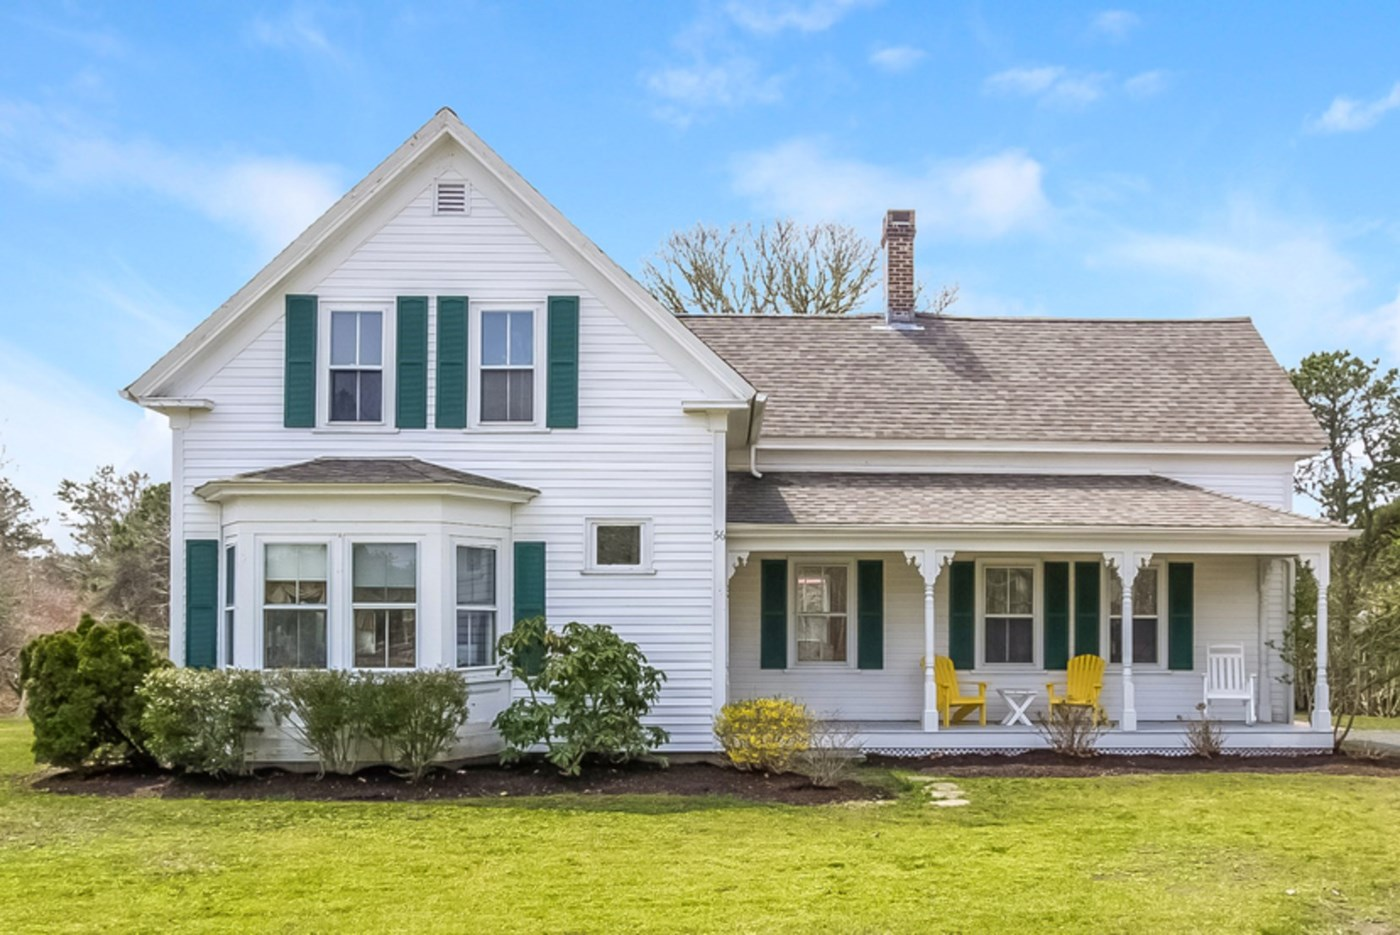 Chatham Vacation Rental Home In Cape Cod Ma 02633 Id 28497